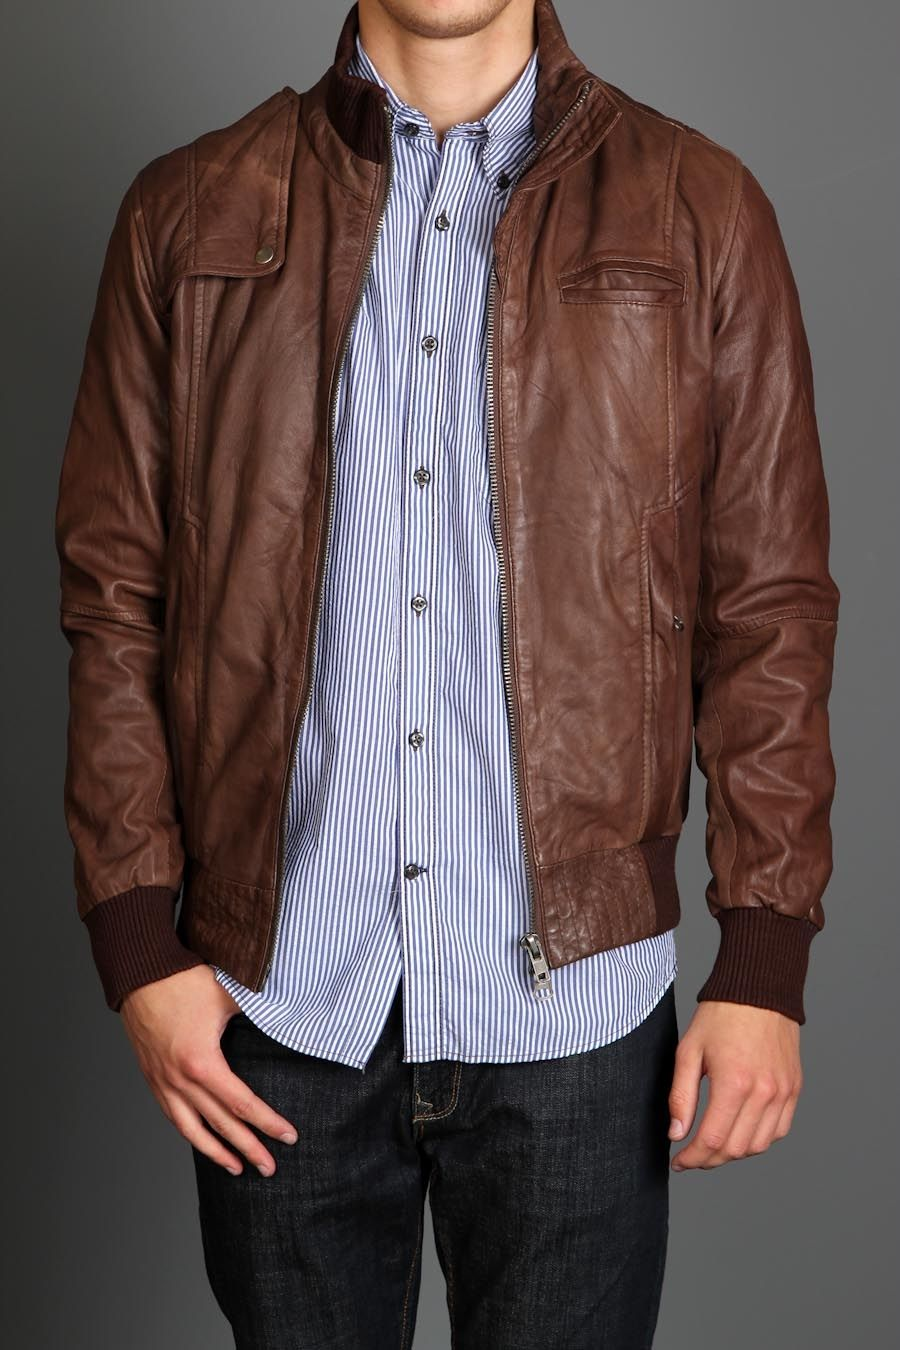 Brown Leather Bomber Jacket Mens Jackets Brown Leather Bomber Jacket Jackets [ jpg ]